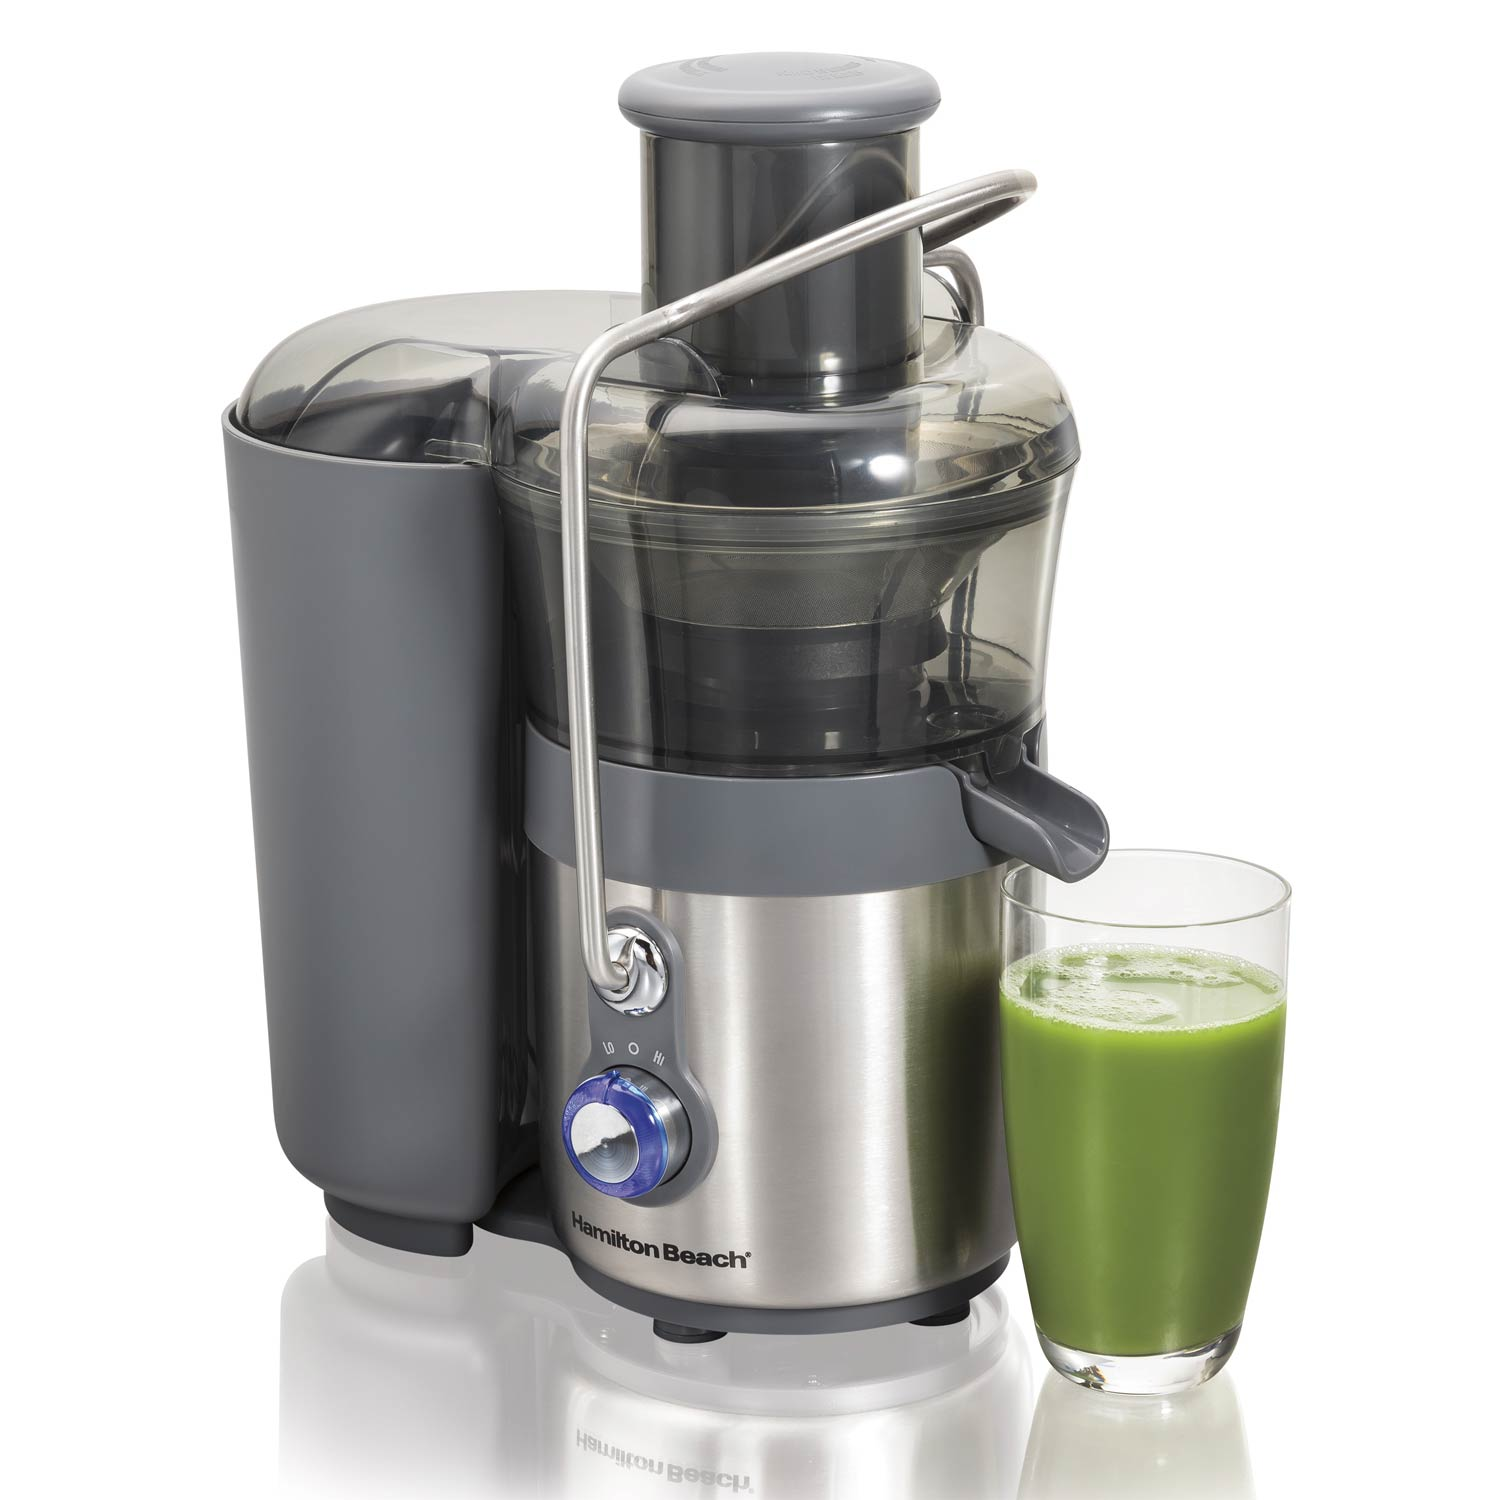 Big Mouth Premium Juicer with 2 Speeds is great for making nutrient-rich green juices.